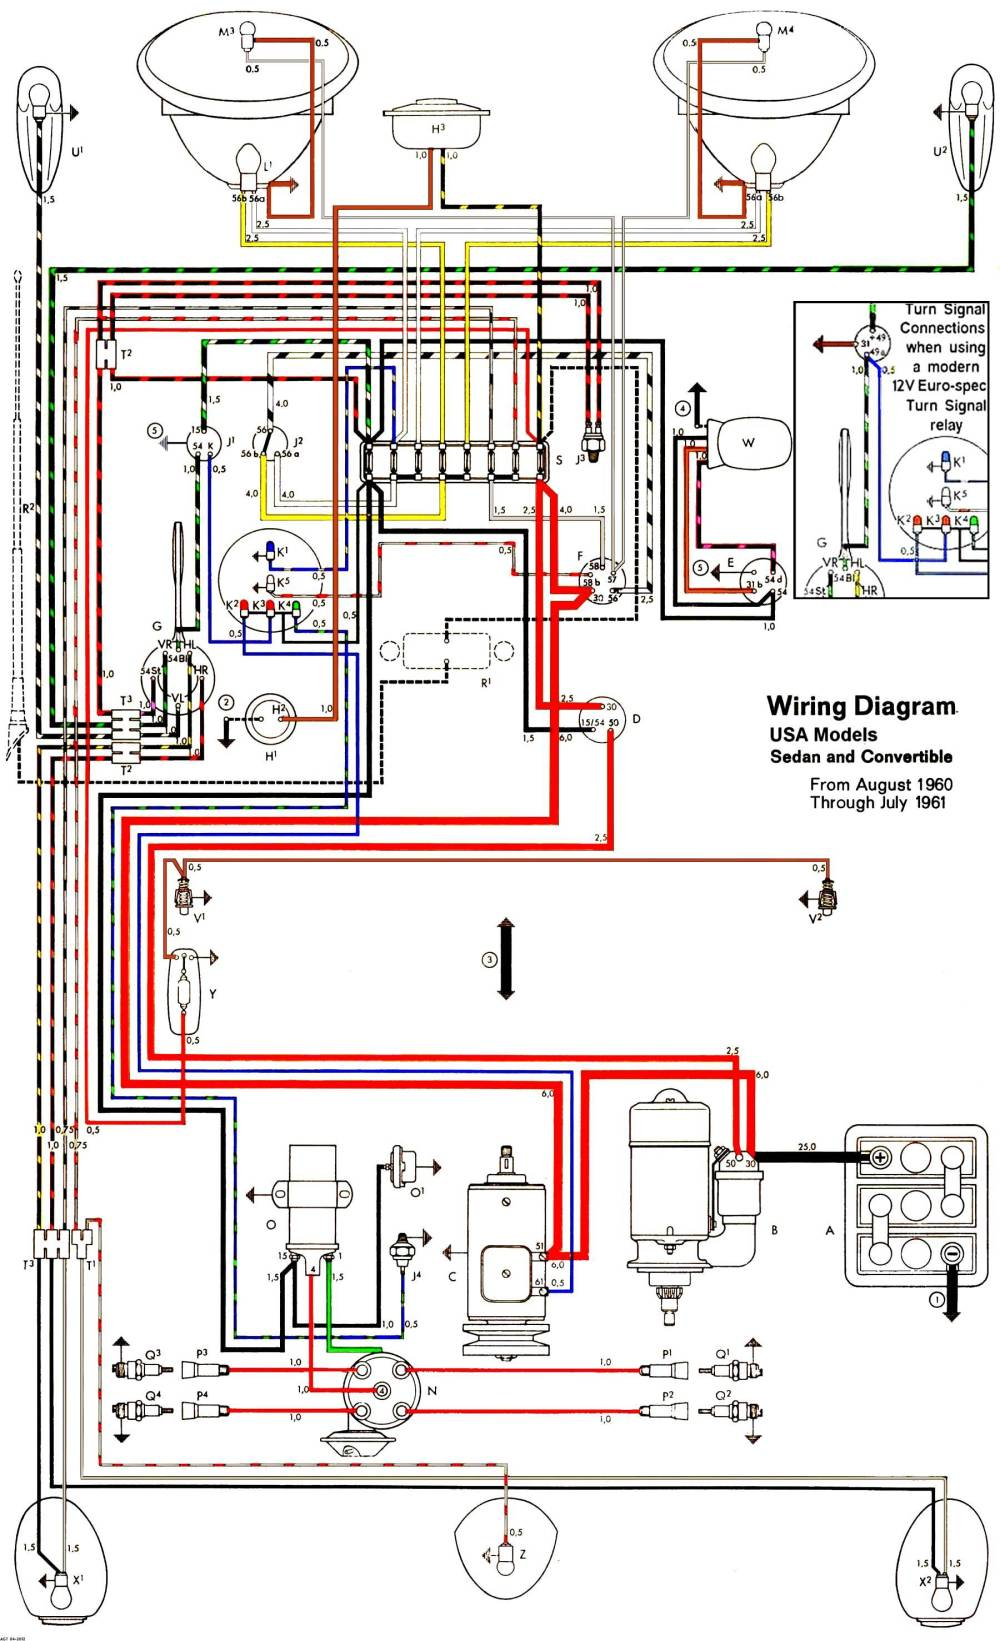 medium resolution of thesamba com type 1 wiring diagrams 70 vw bug turn signal wiring